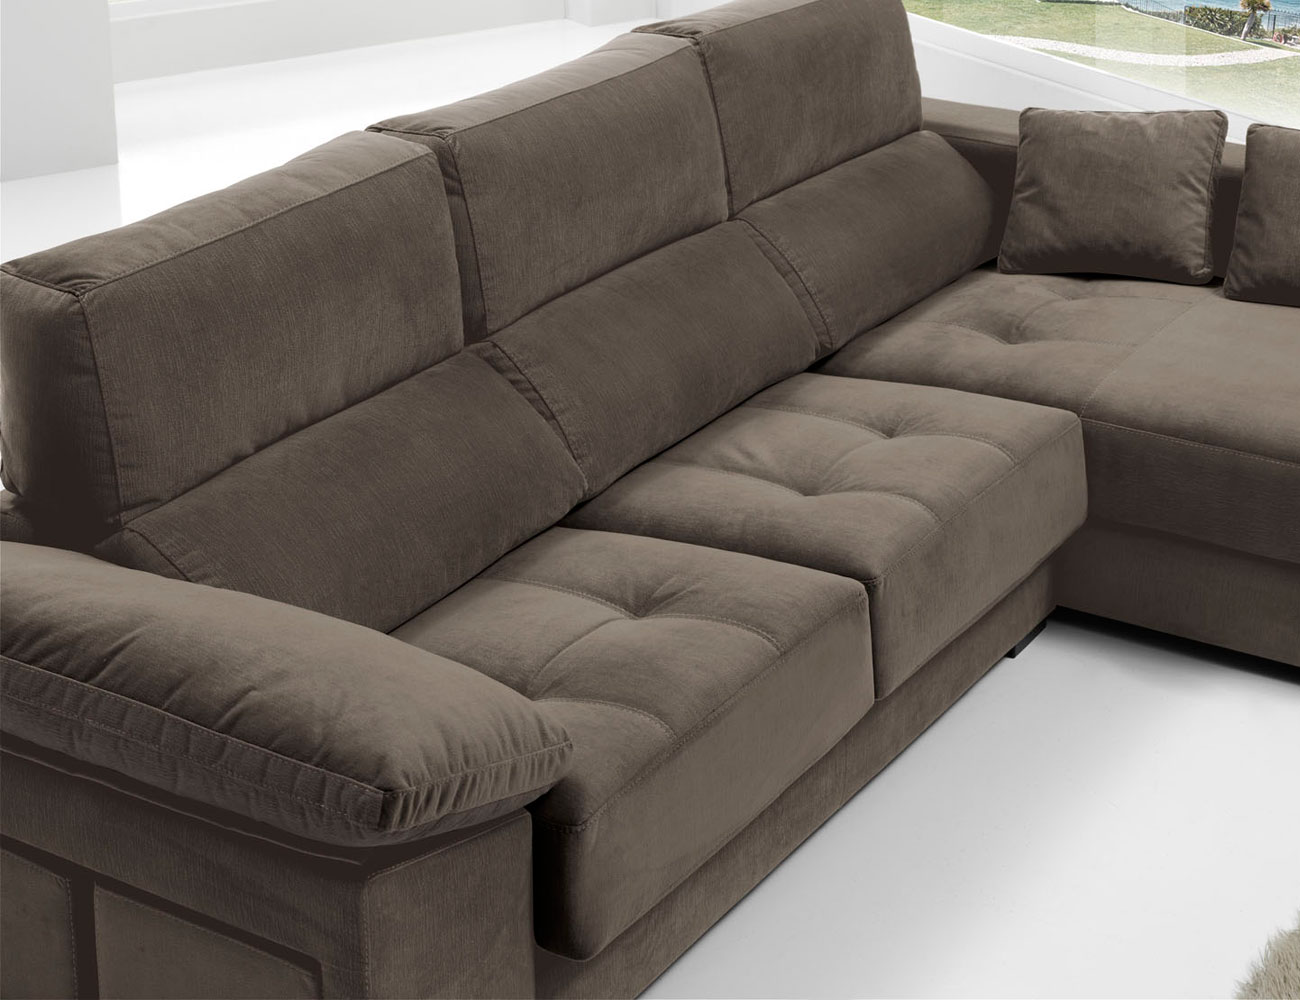 Sofa chaiselongue anti manchas bering pouf 279